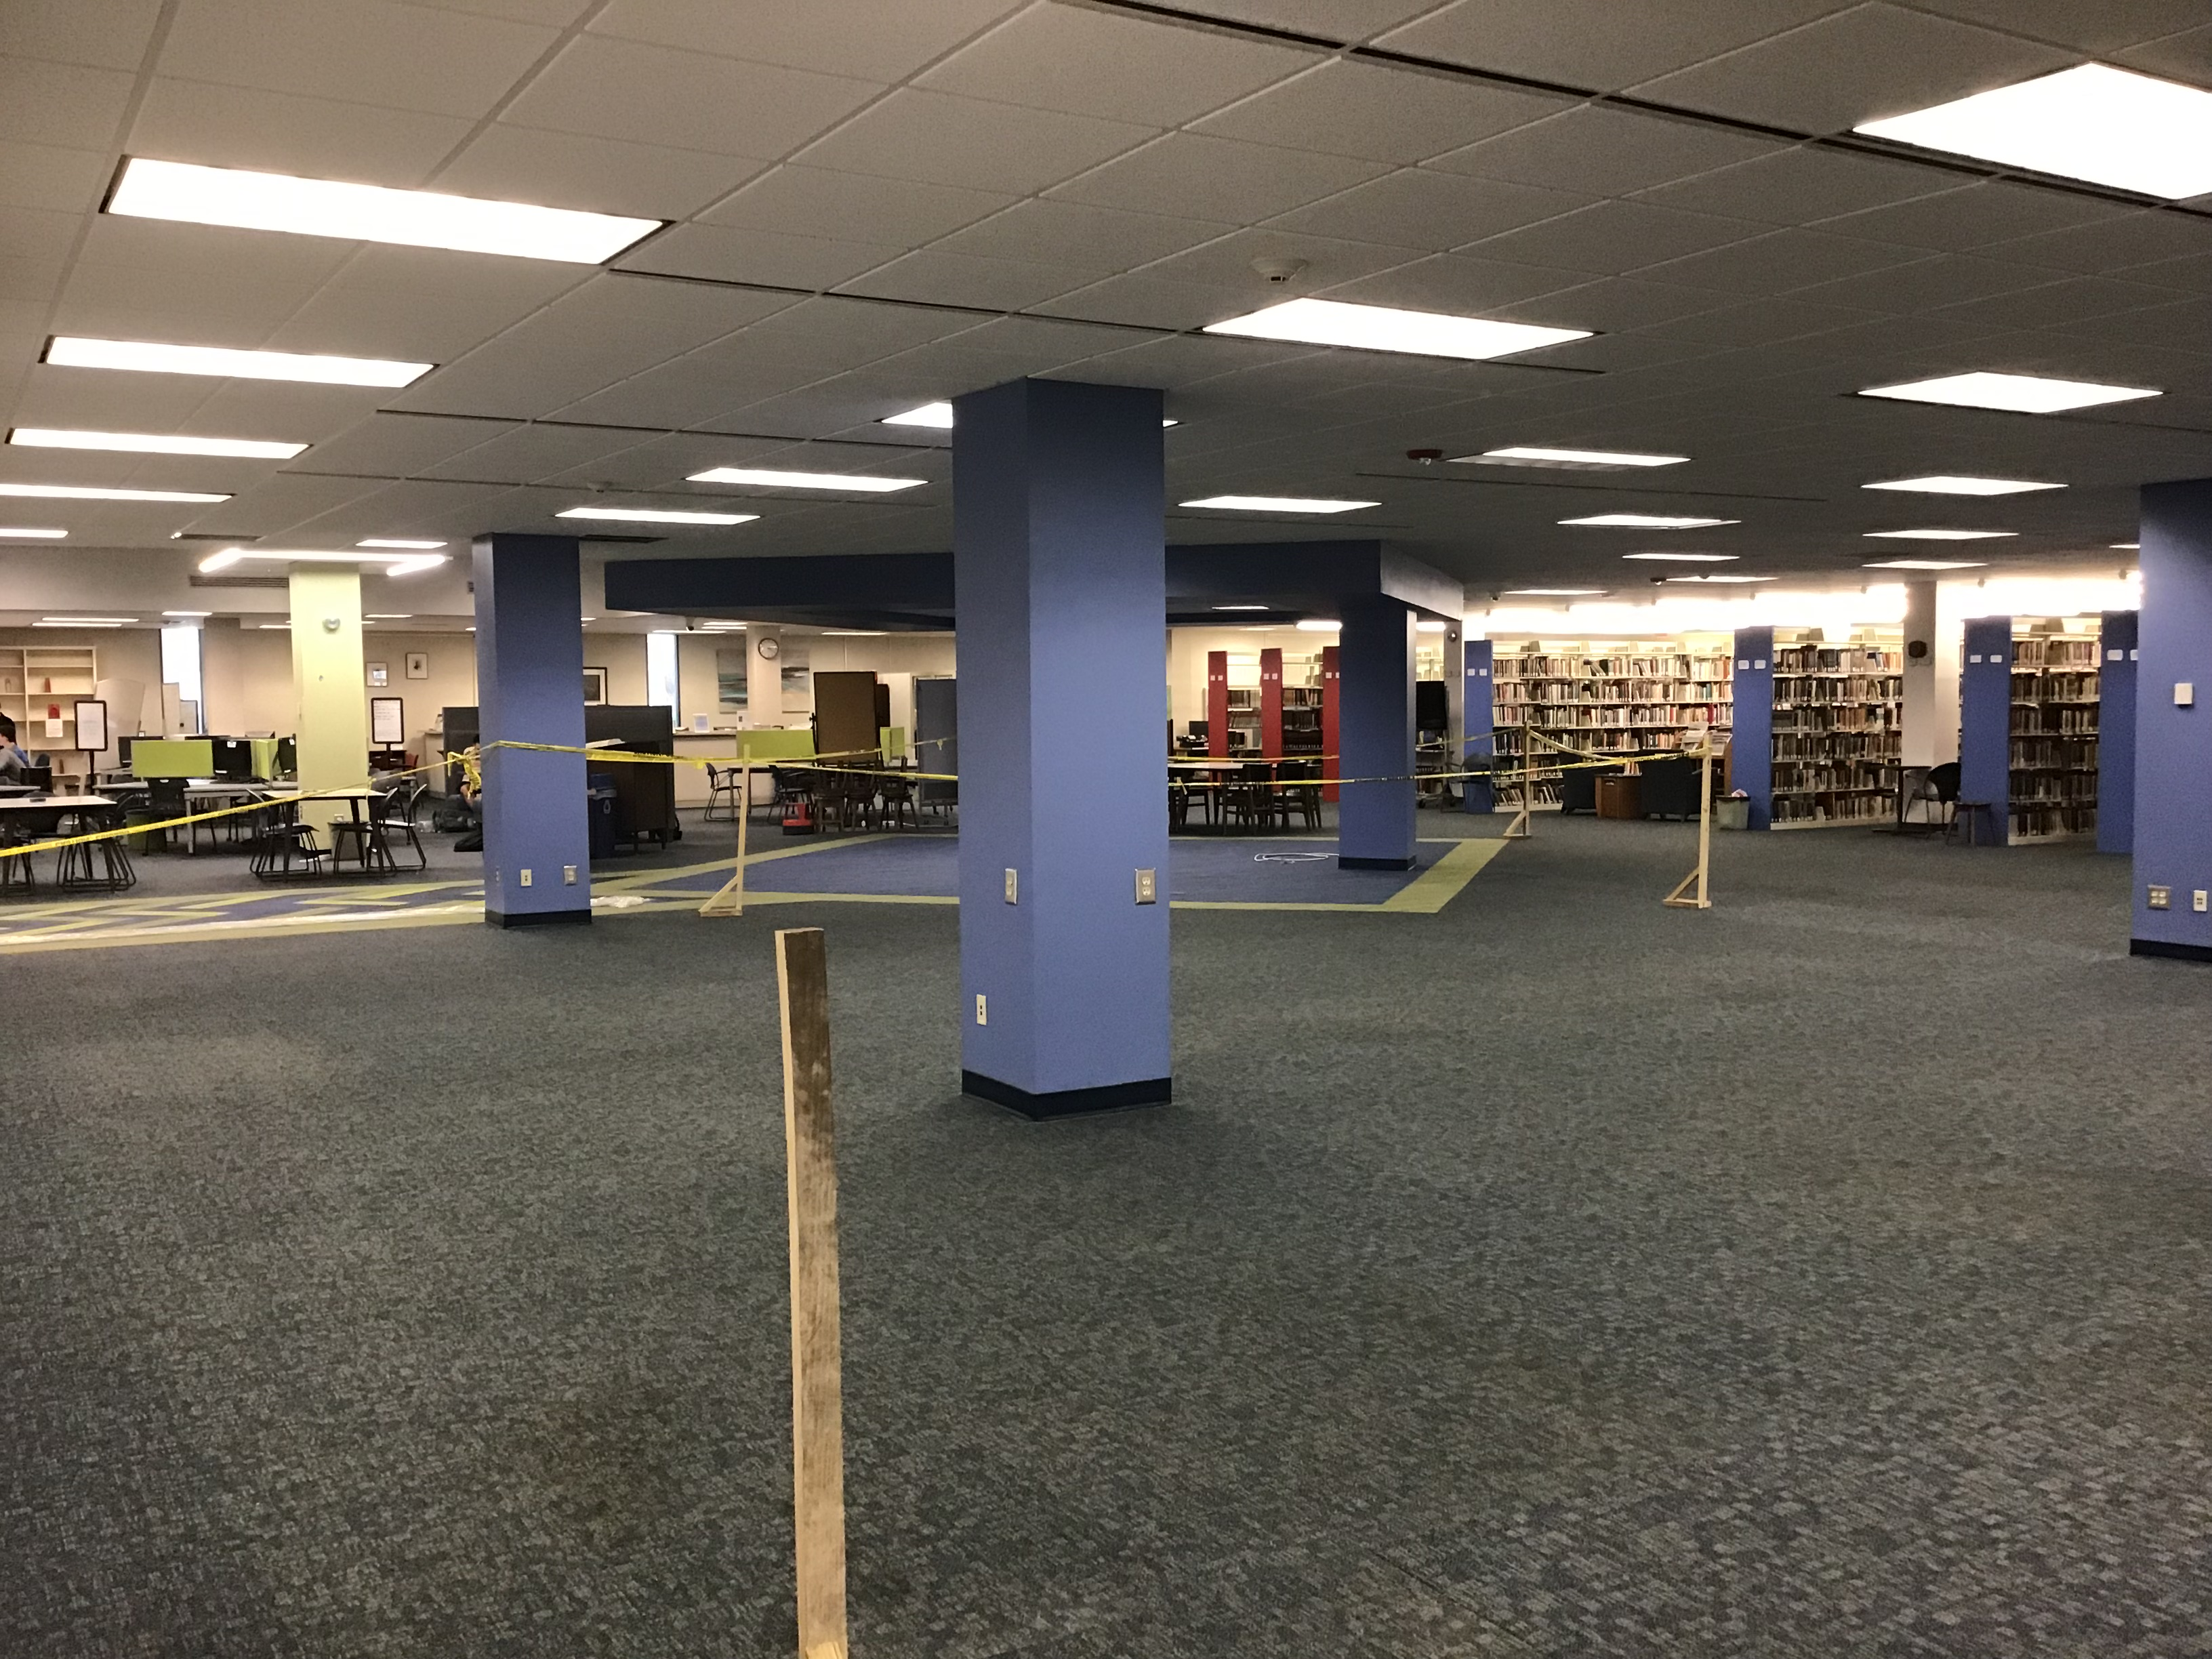 Image site of new circulation desk